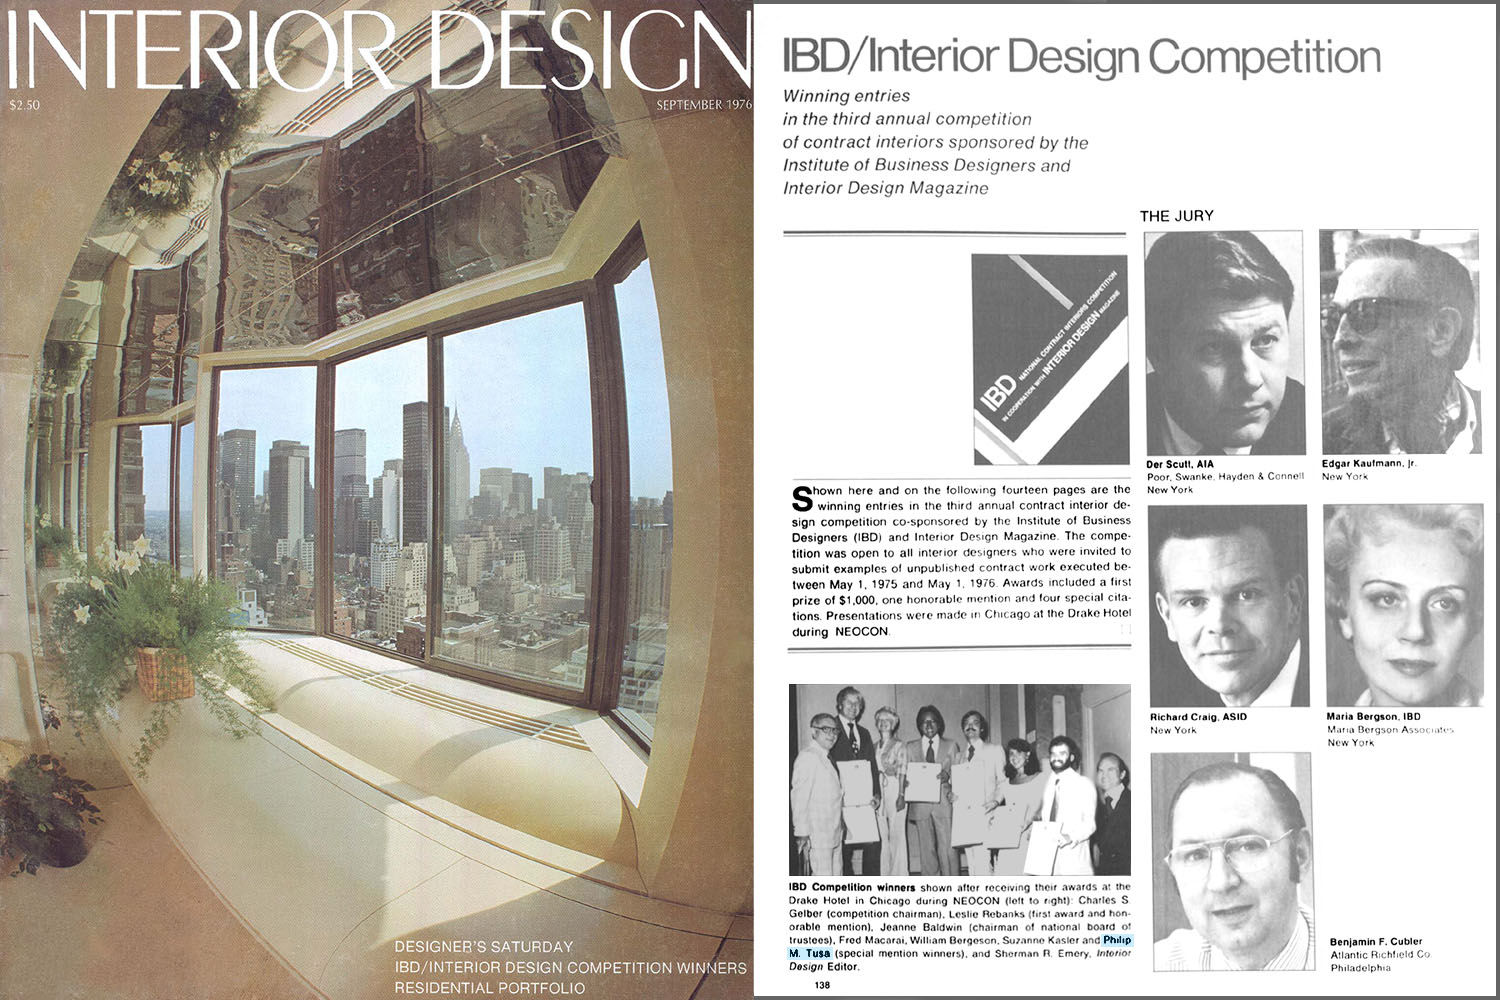 Interior Design Magazine Article (9/76) pg.138; 316 East 53rd Street Studio